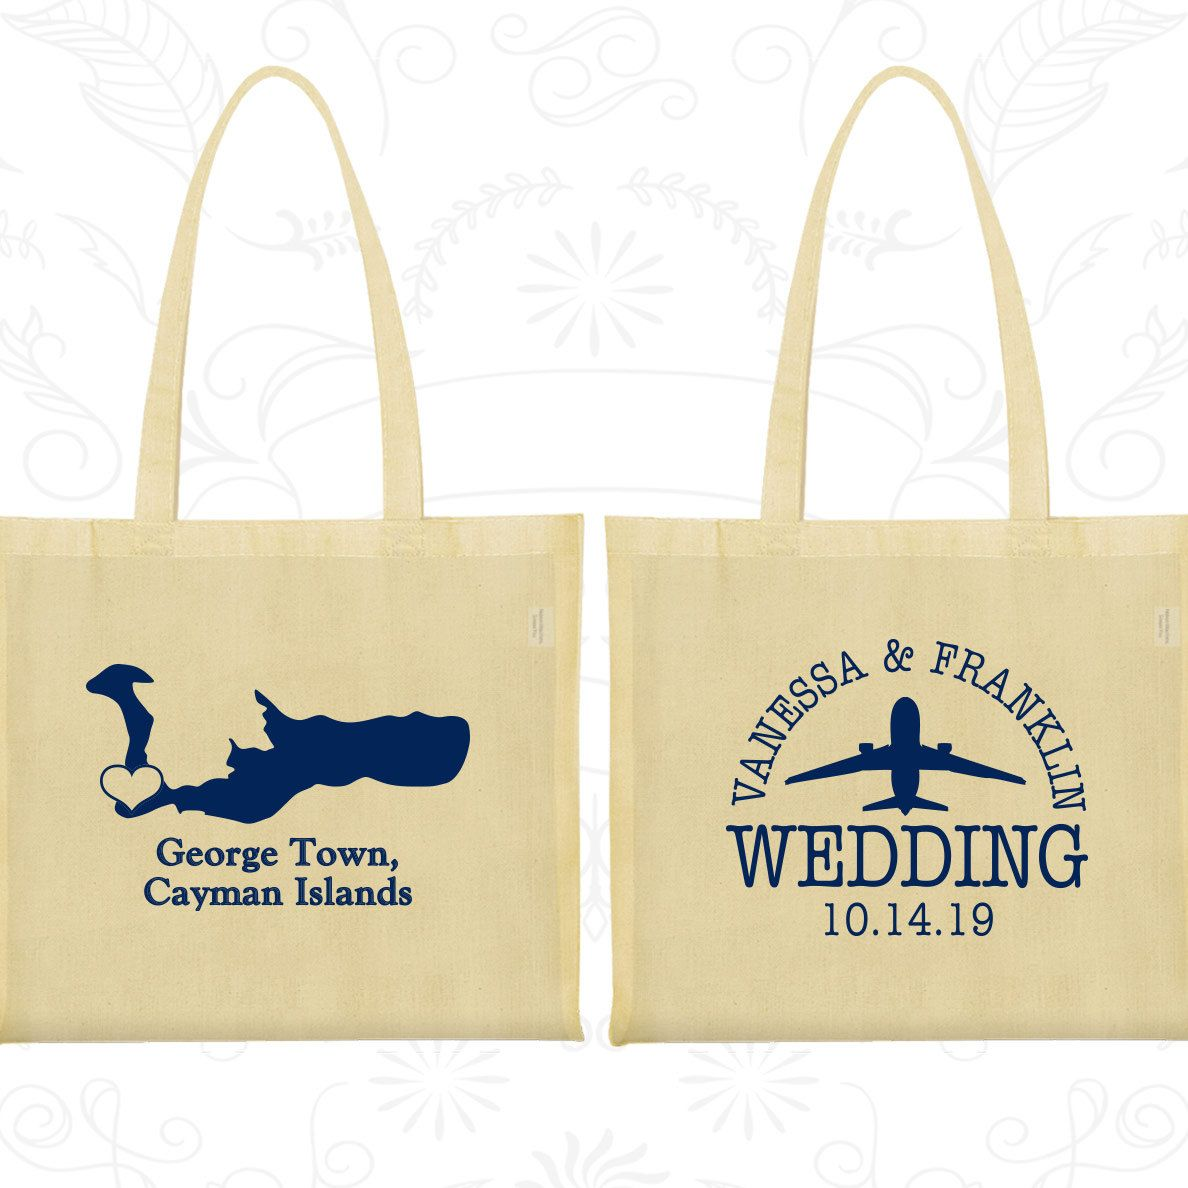 Personalized Tote Bag, Tote Bags, Wedding Tote Bags, Personalized ...